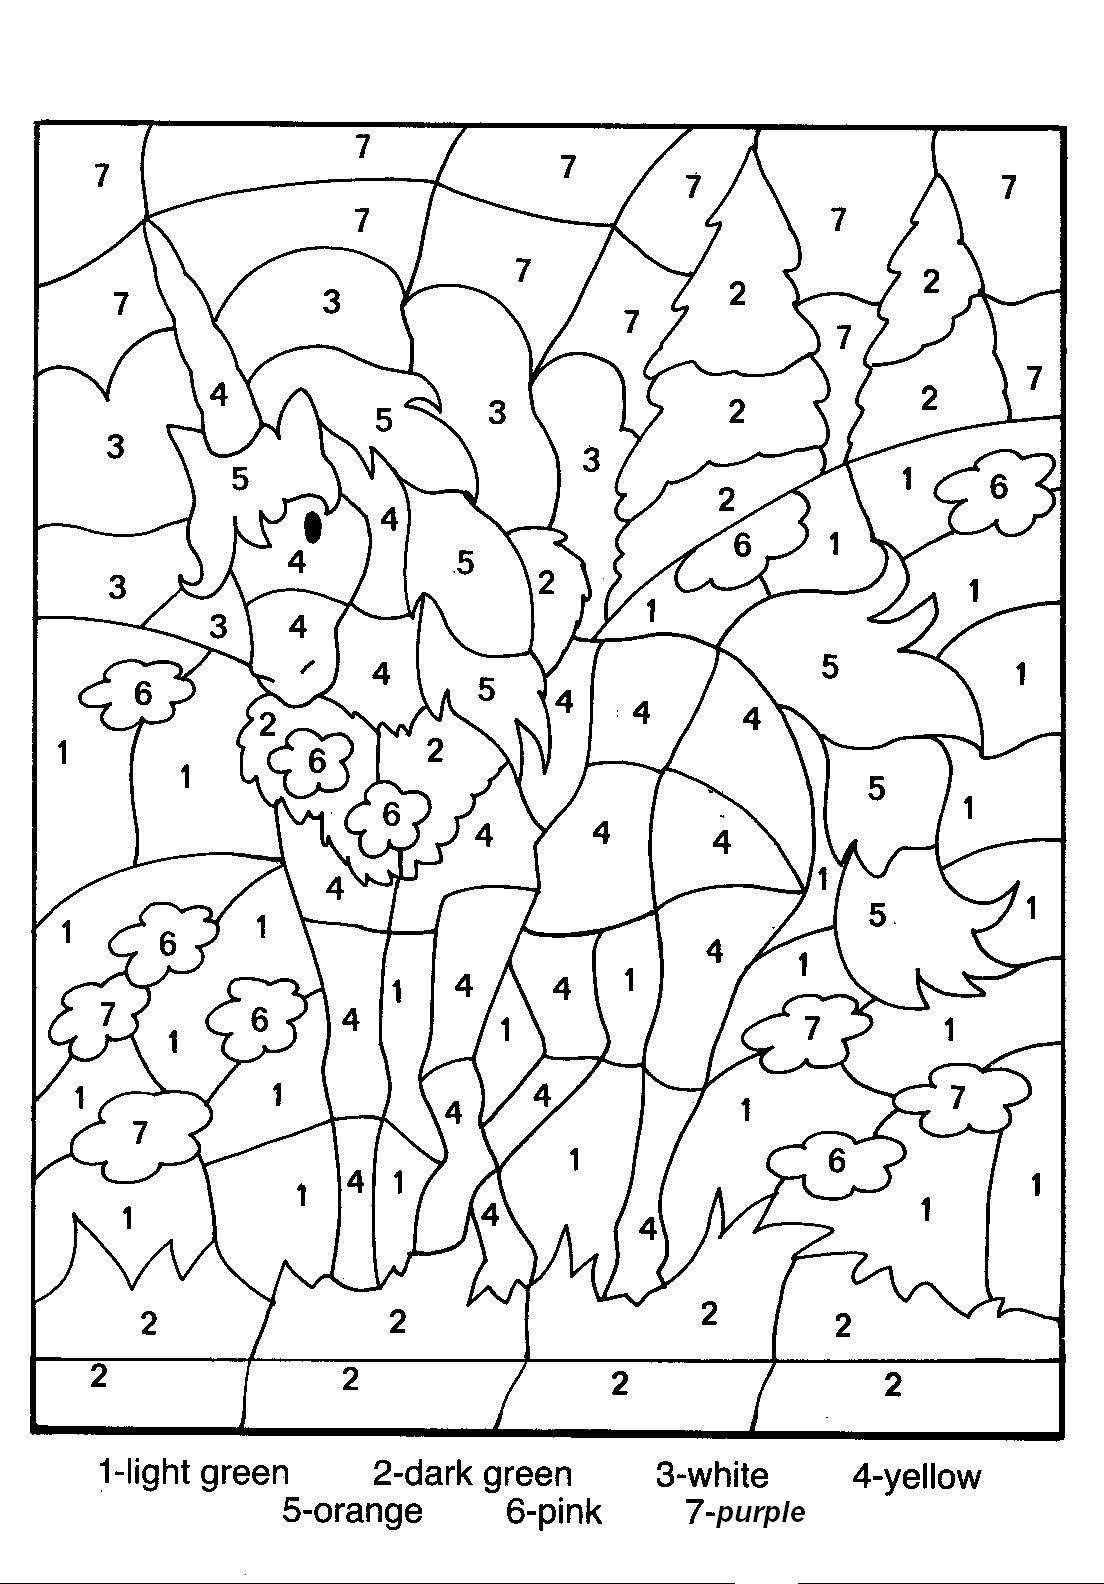 Free coloring pages for school kids - Free Printable Color By Number Coloring Pages Best Coloring Pages For Kids